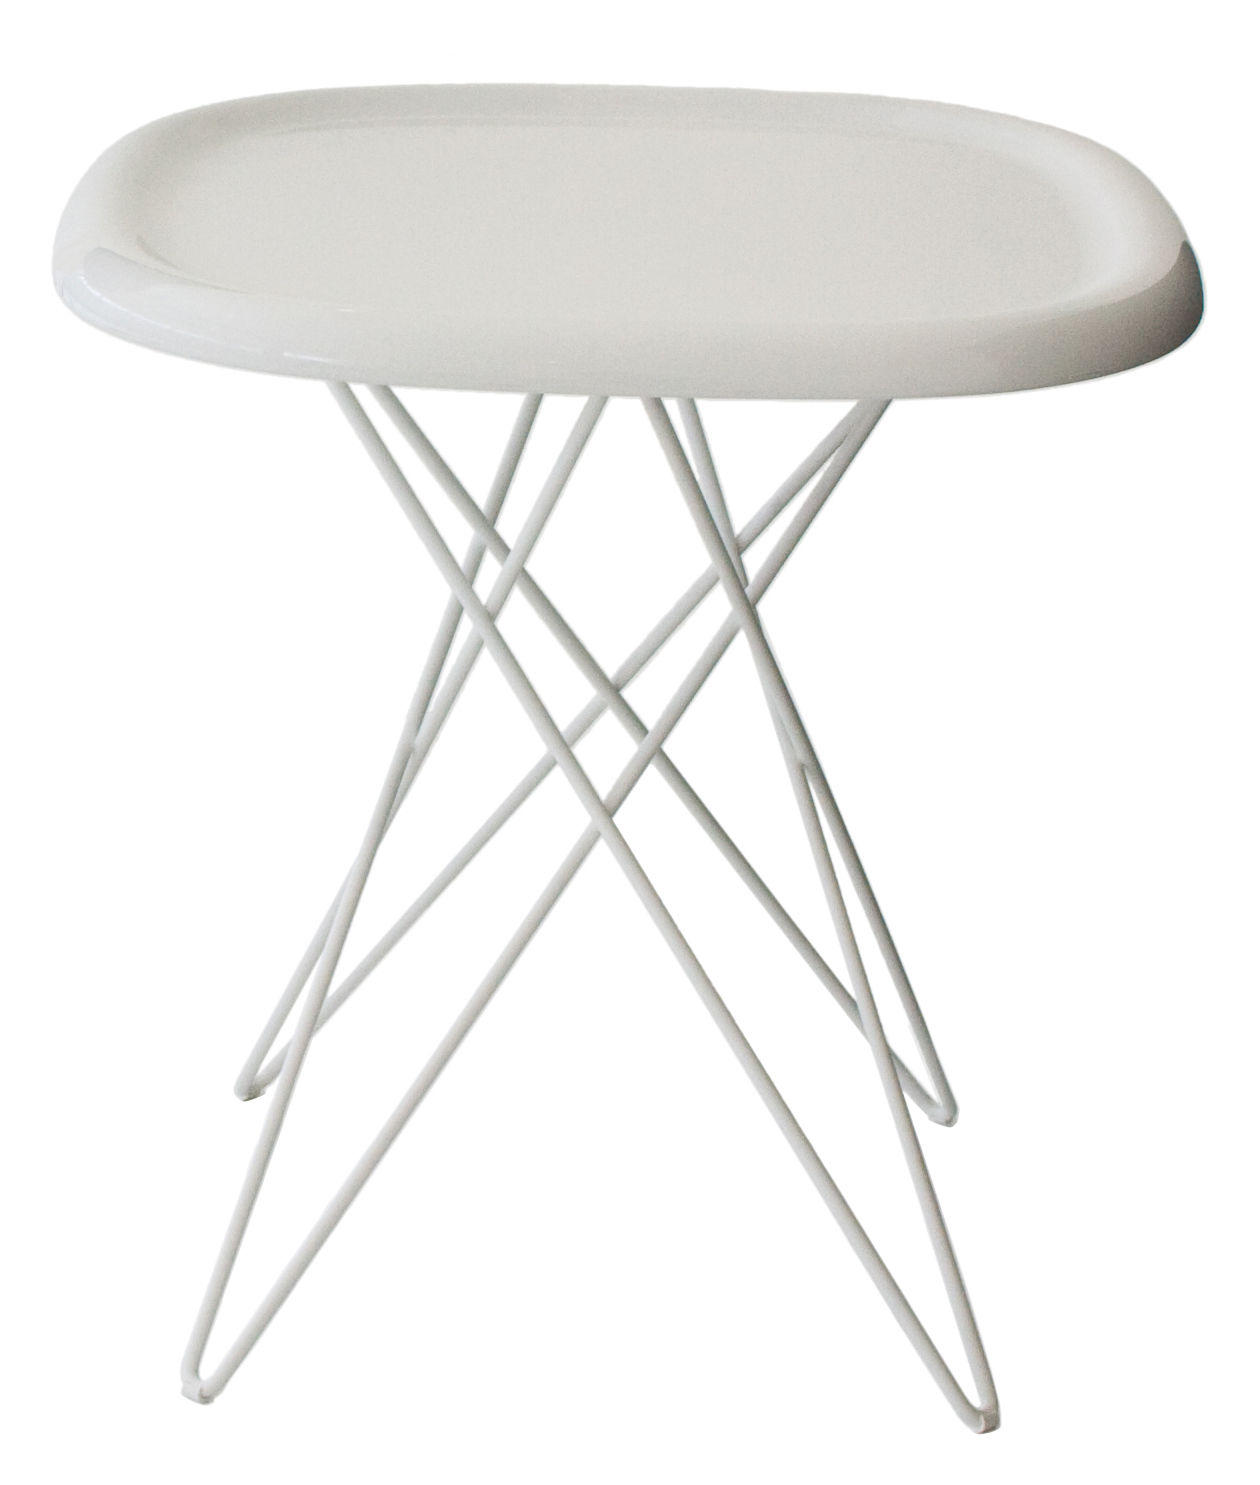 Furniture - Pizza End table - H 46 cm by Magis - H 46 cm - White - ABS, Varnished steel